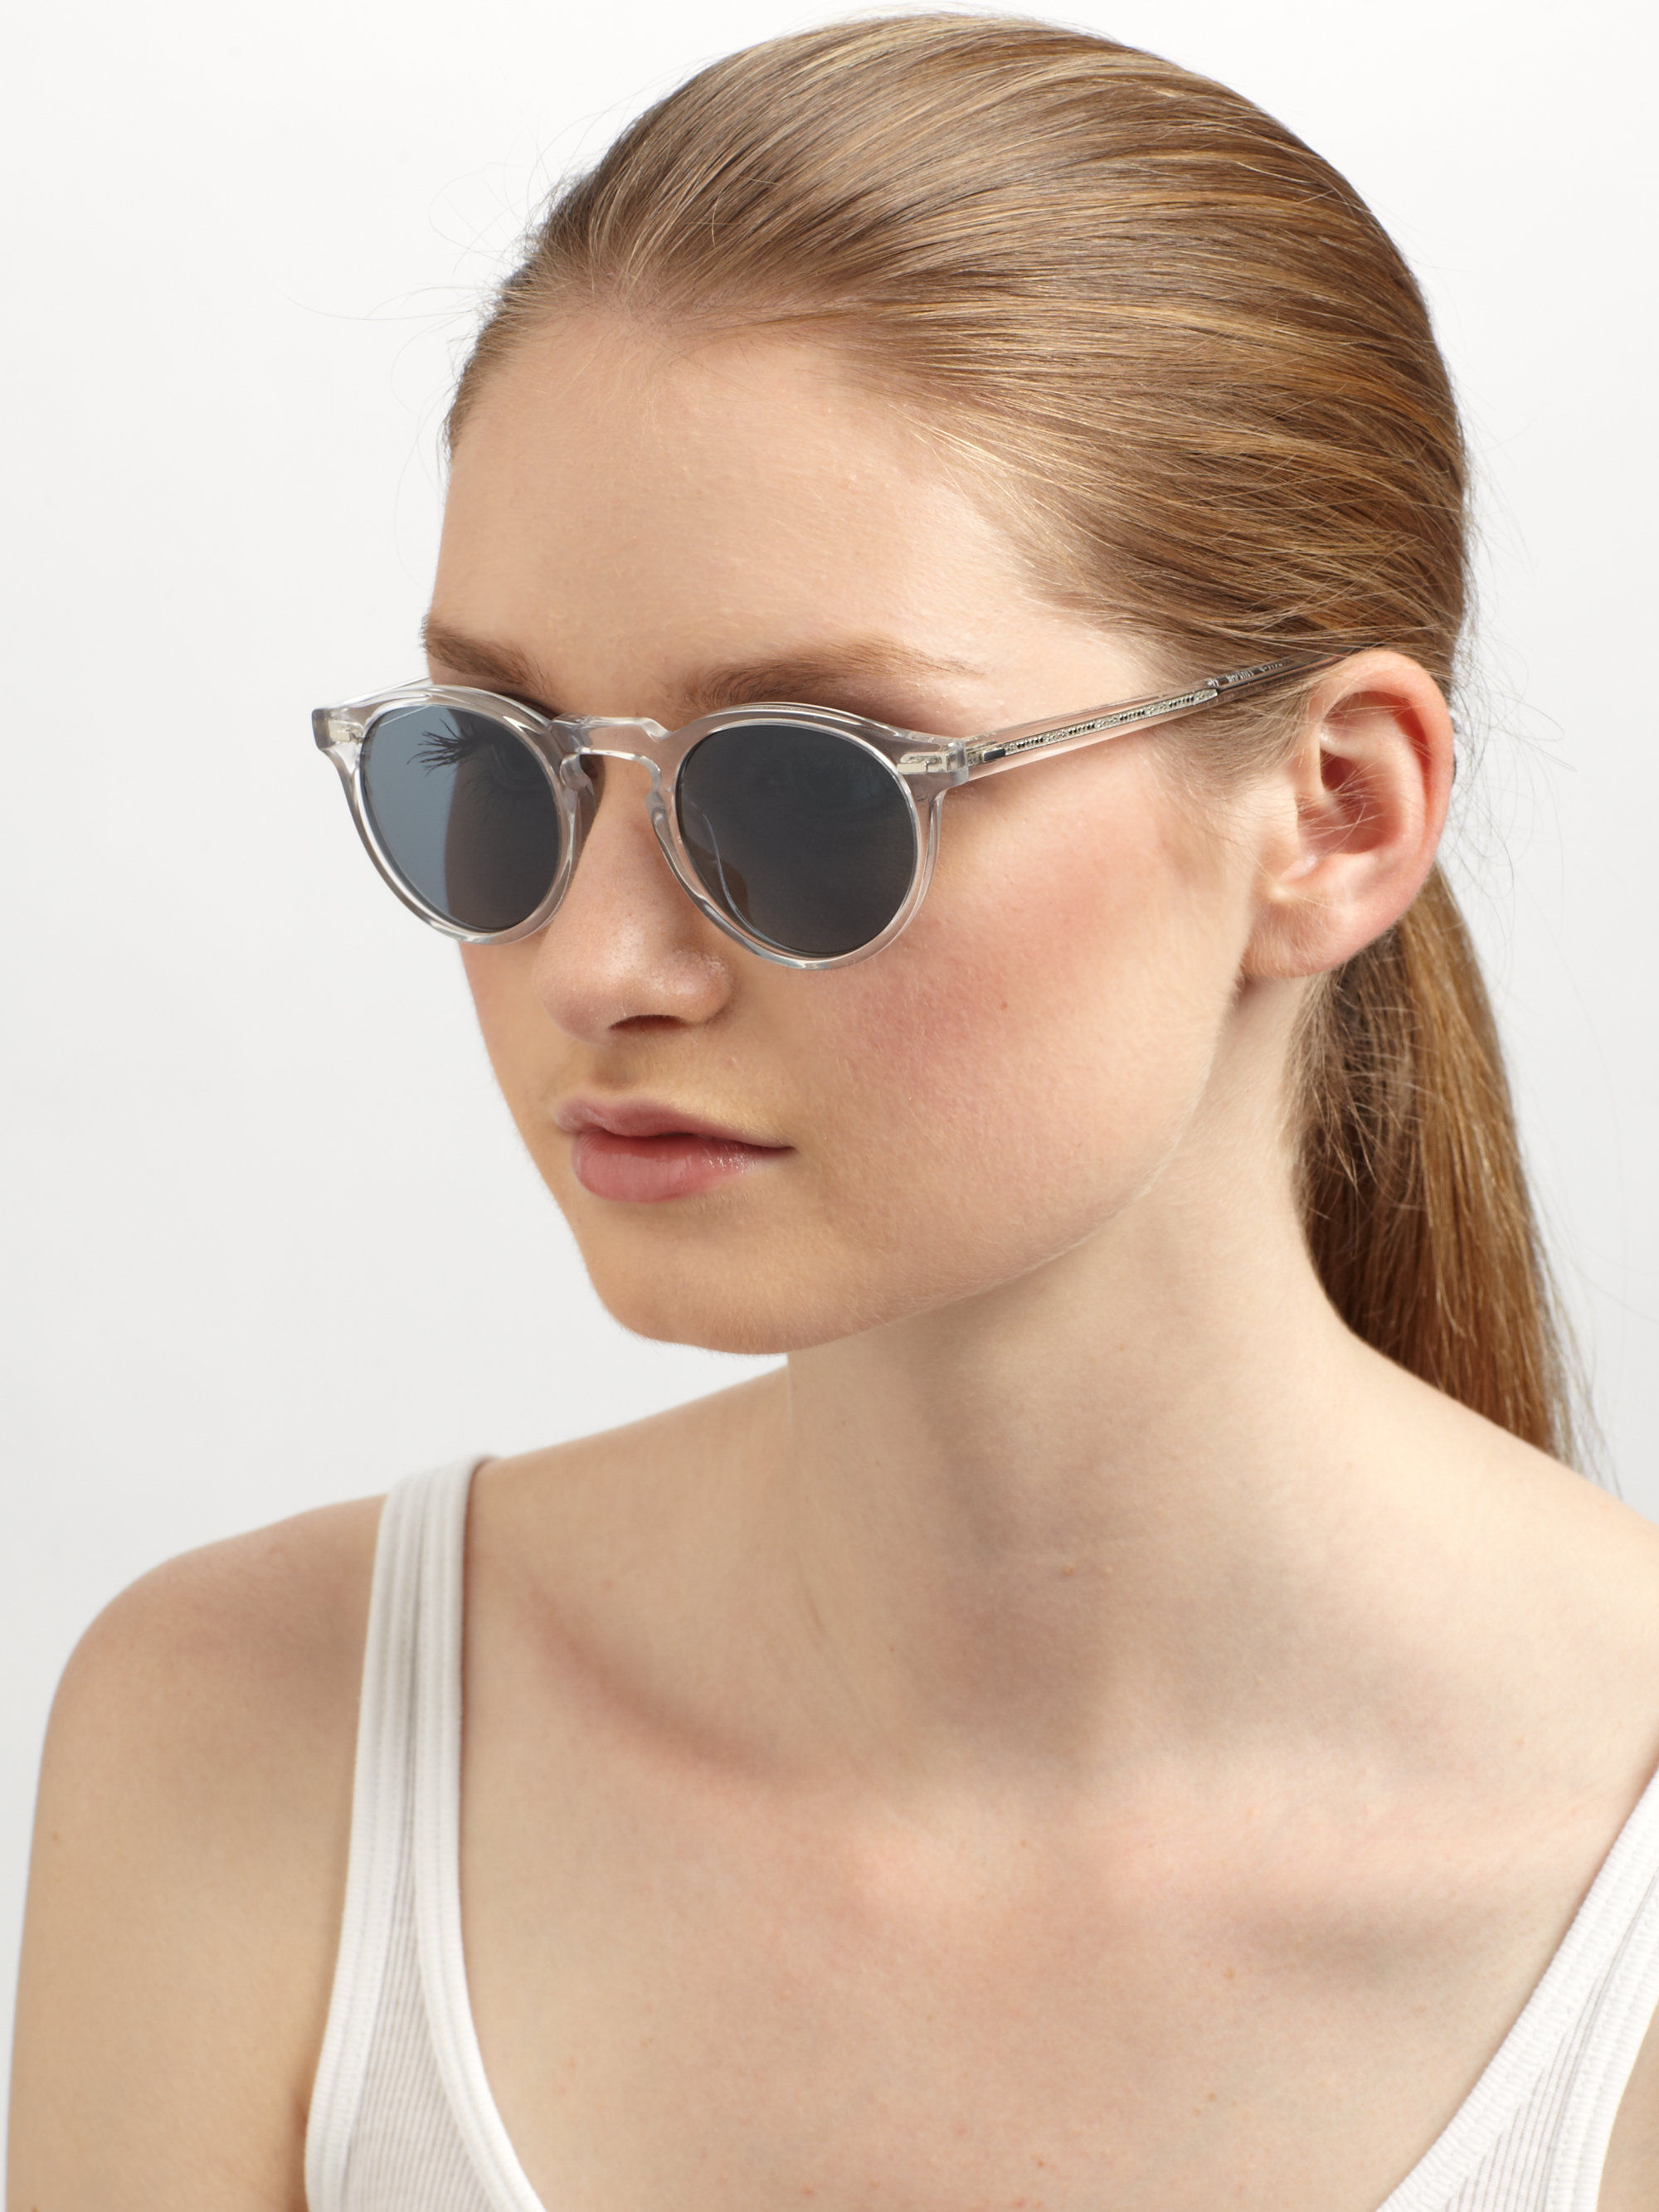 6d15fde9b21 Lyst - Oliver Peoples Gregory Peck Oval Plastic Sunglasses crystal ...